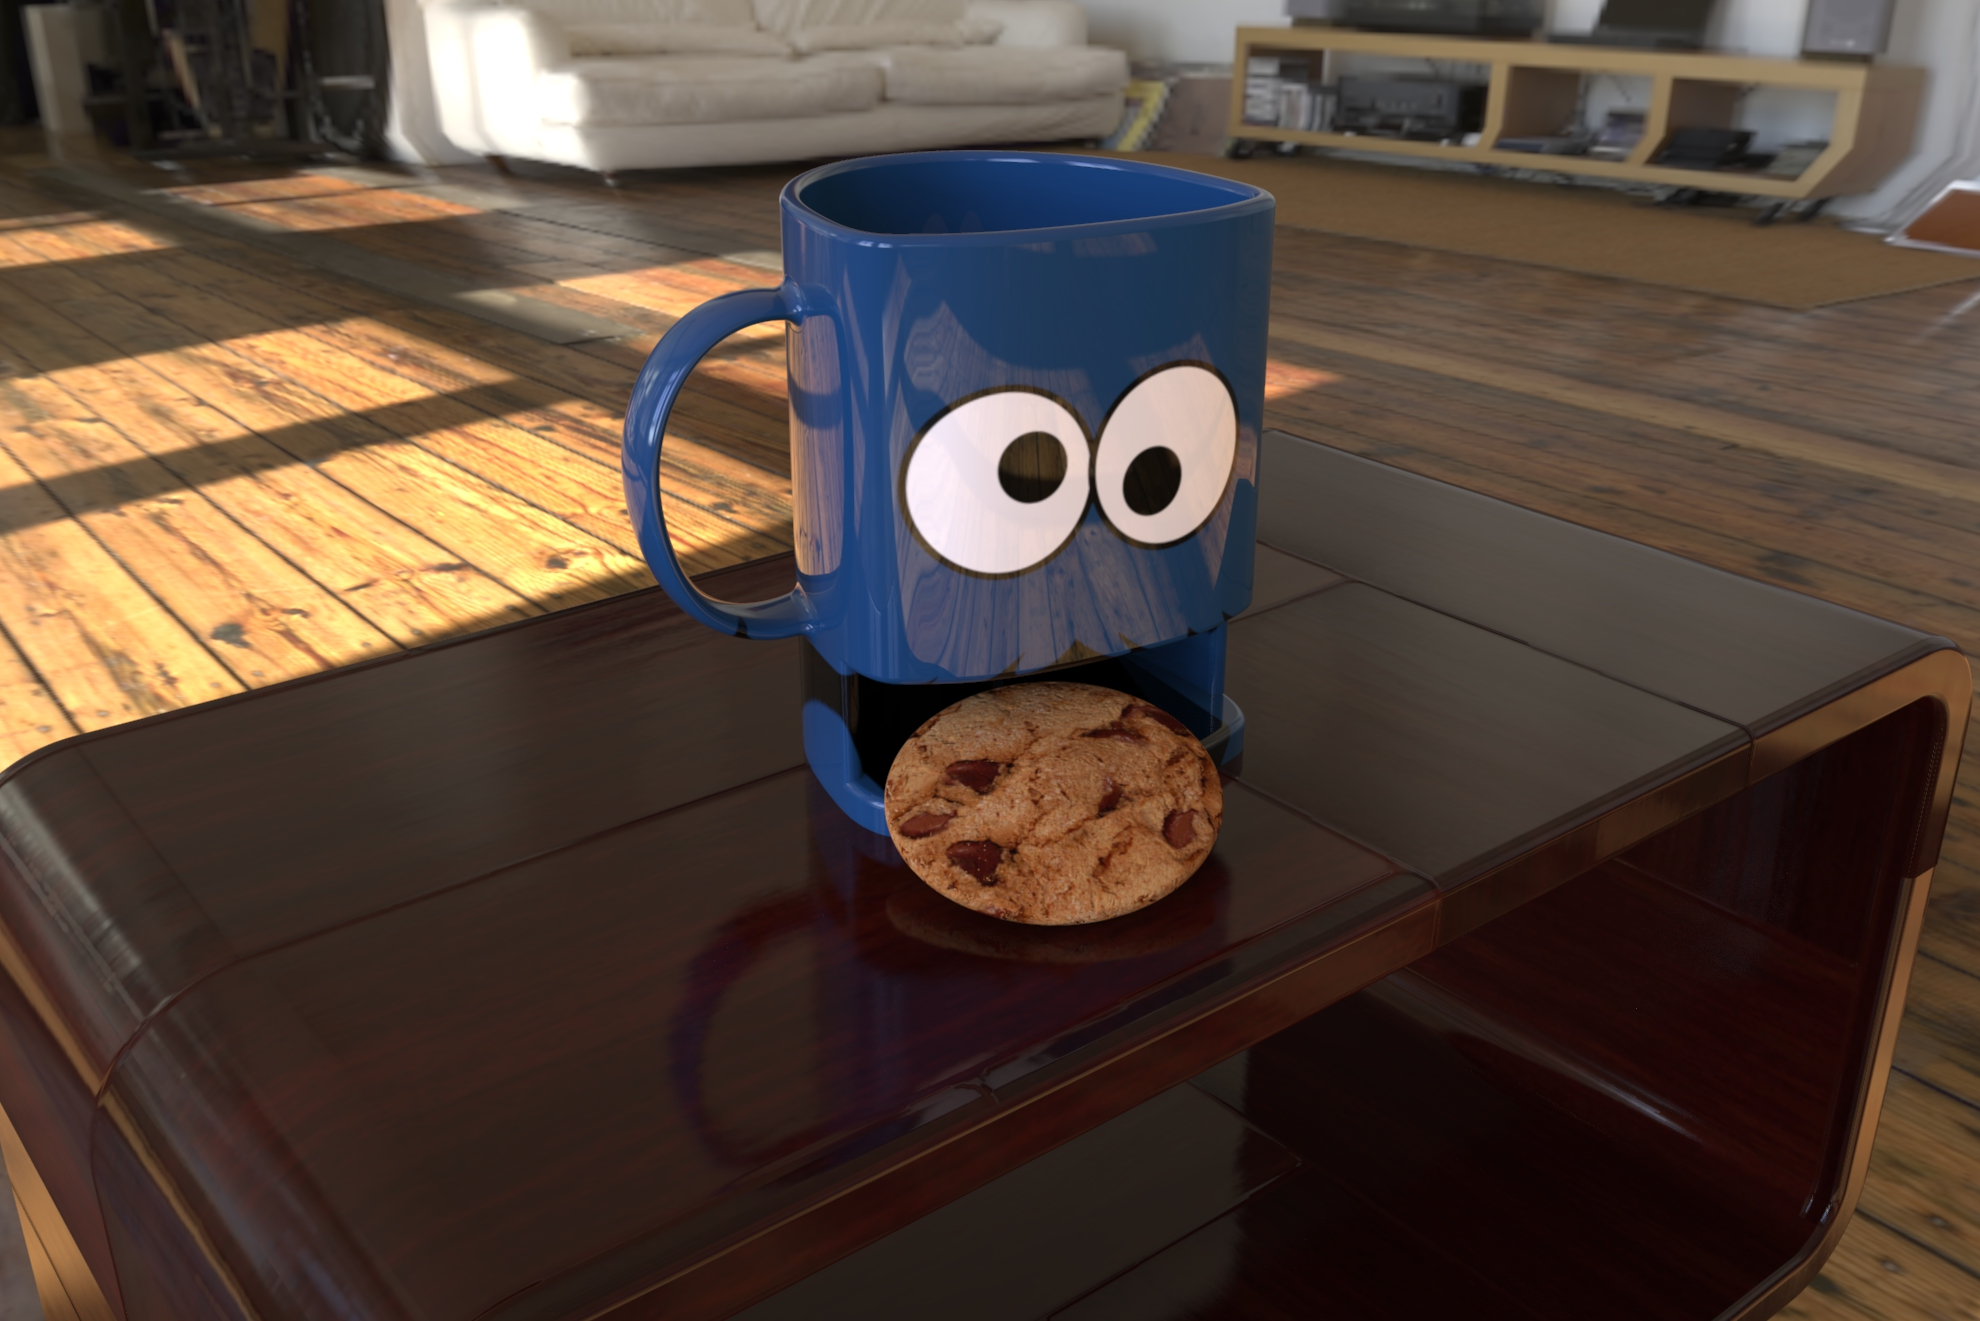 cookie mug model 3d ig X igen ig 282056